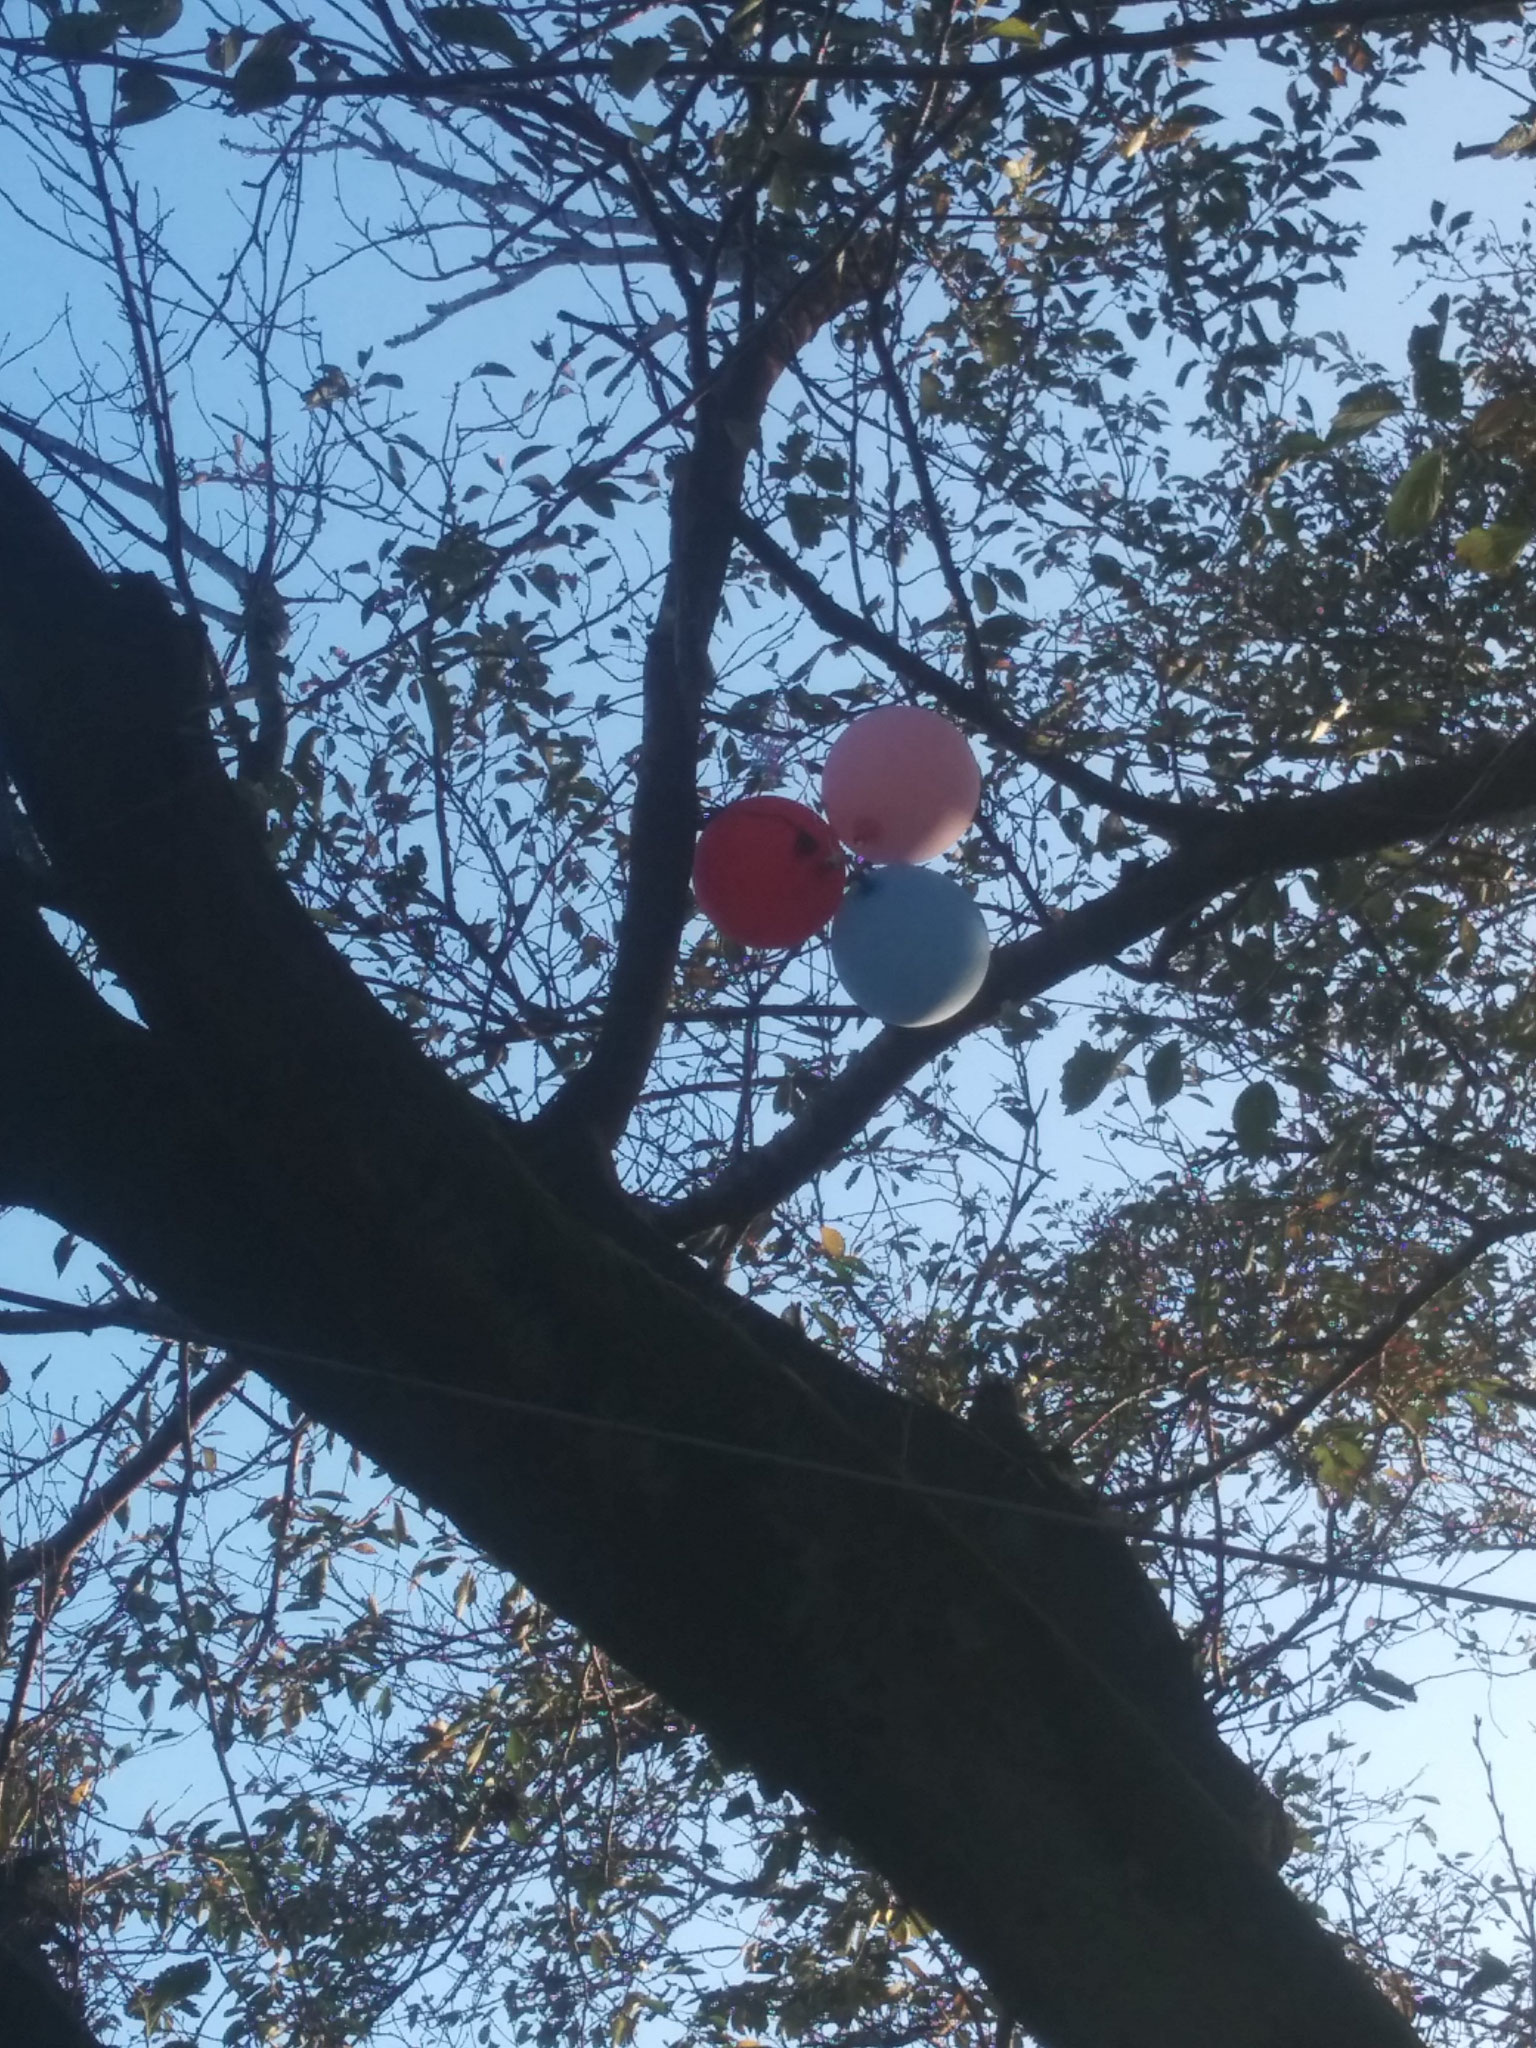 9 My hostbro lost these balloons (he doesn't know about helium)